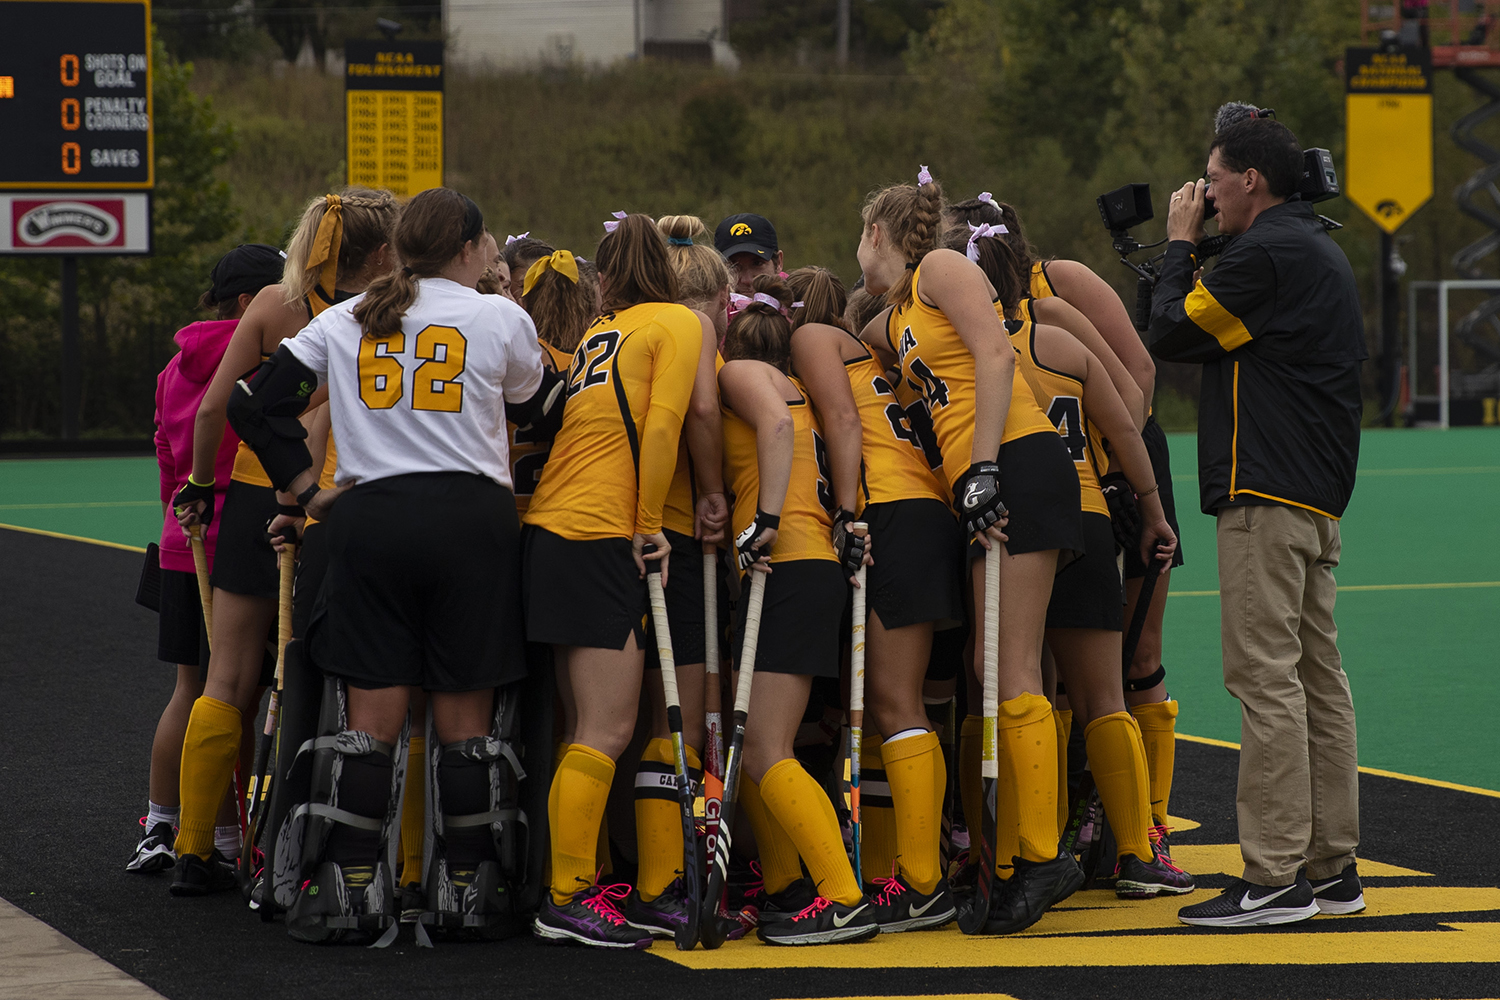 Iowa's team huddles before the UC Davis field hockey game on October 6, 2019.